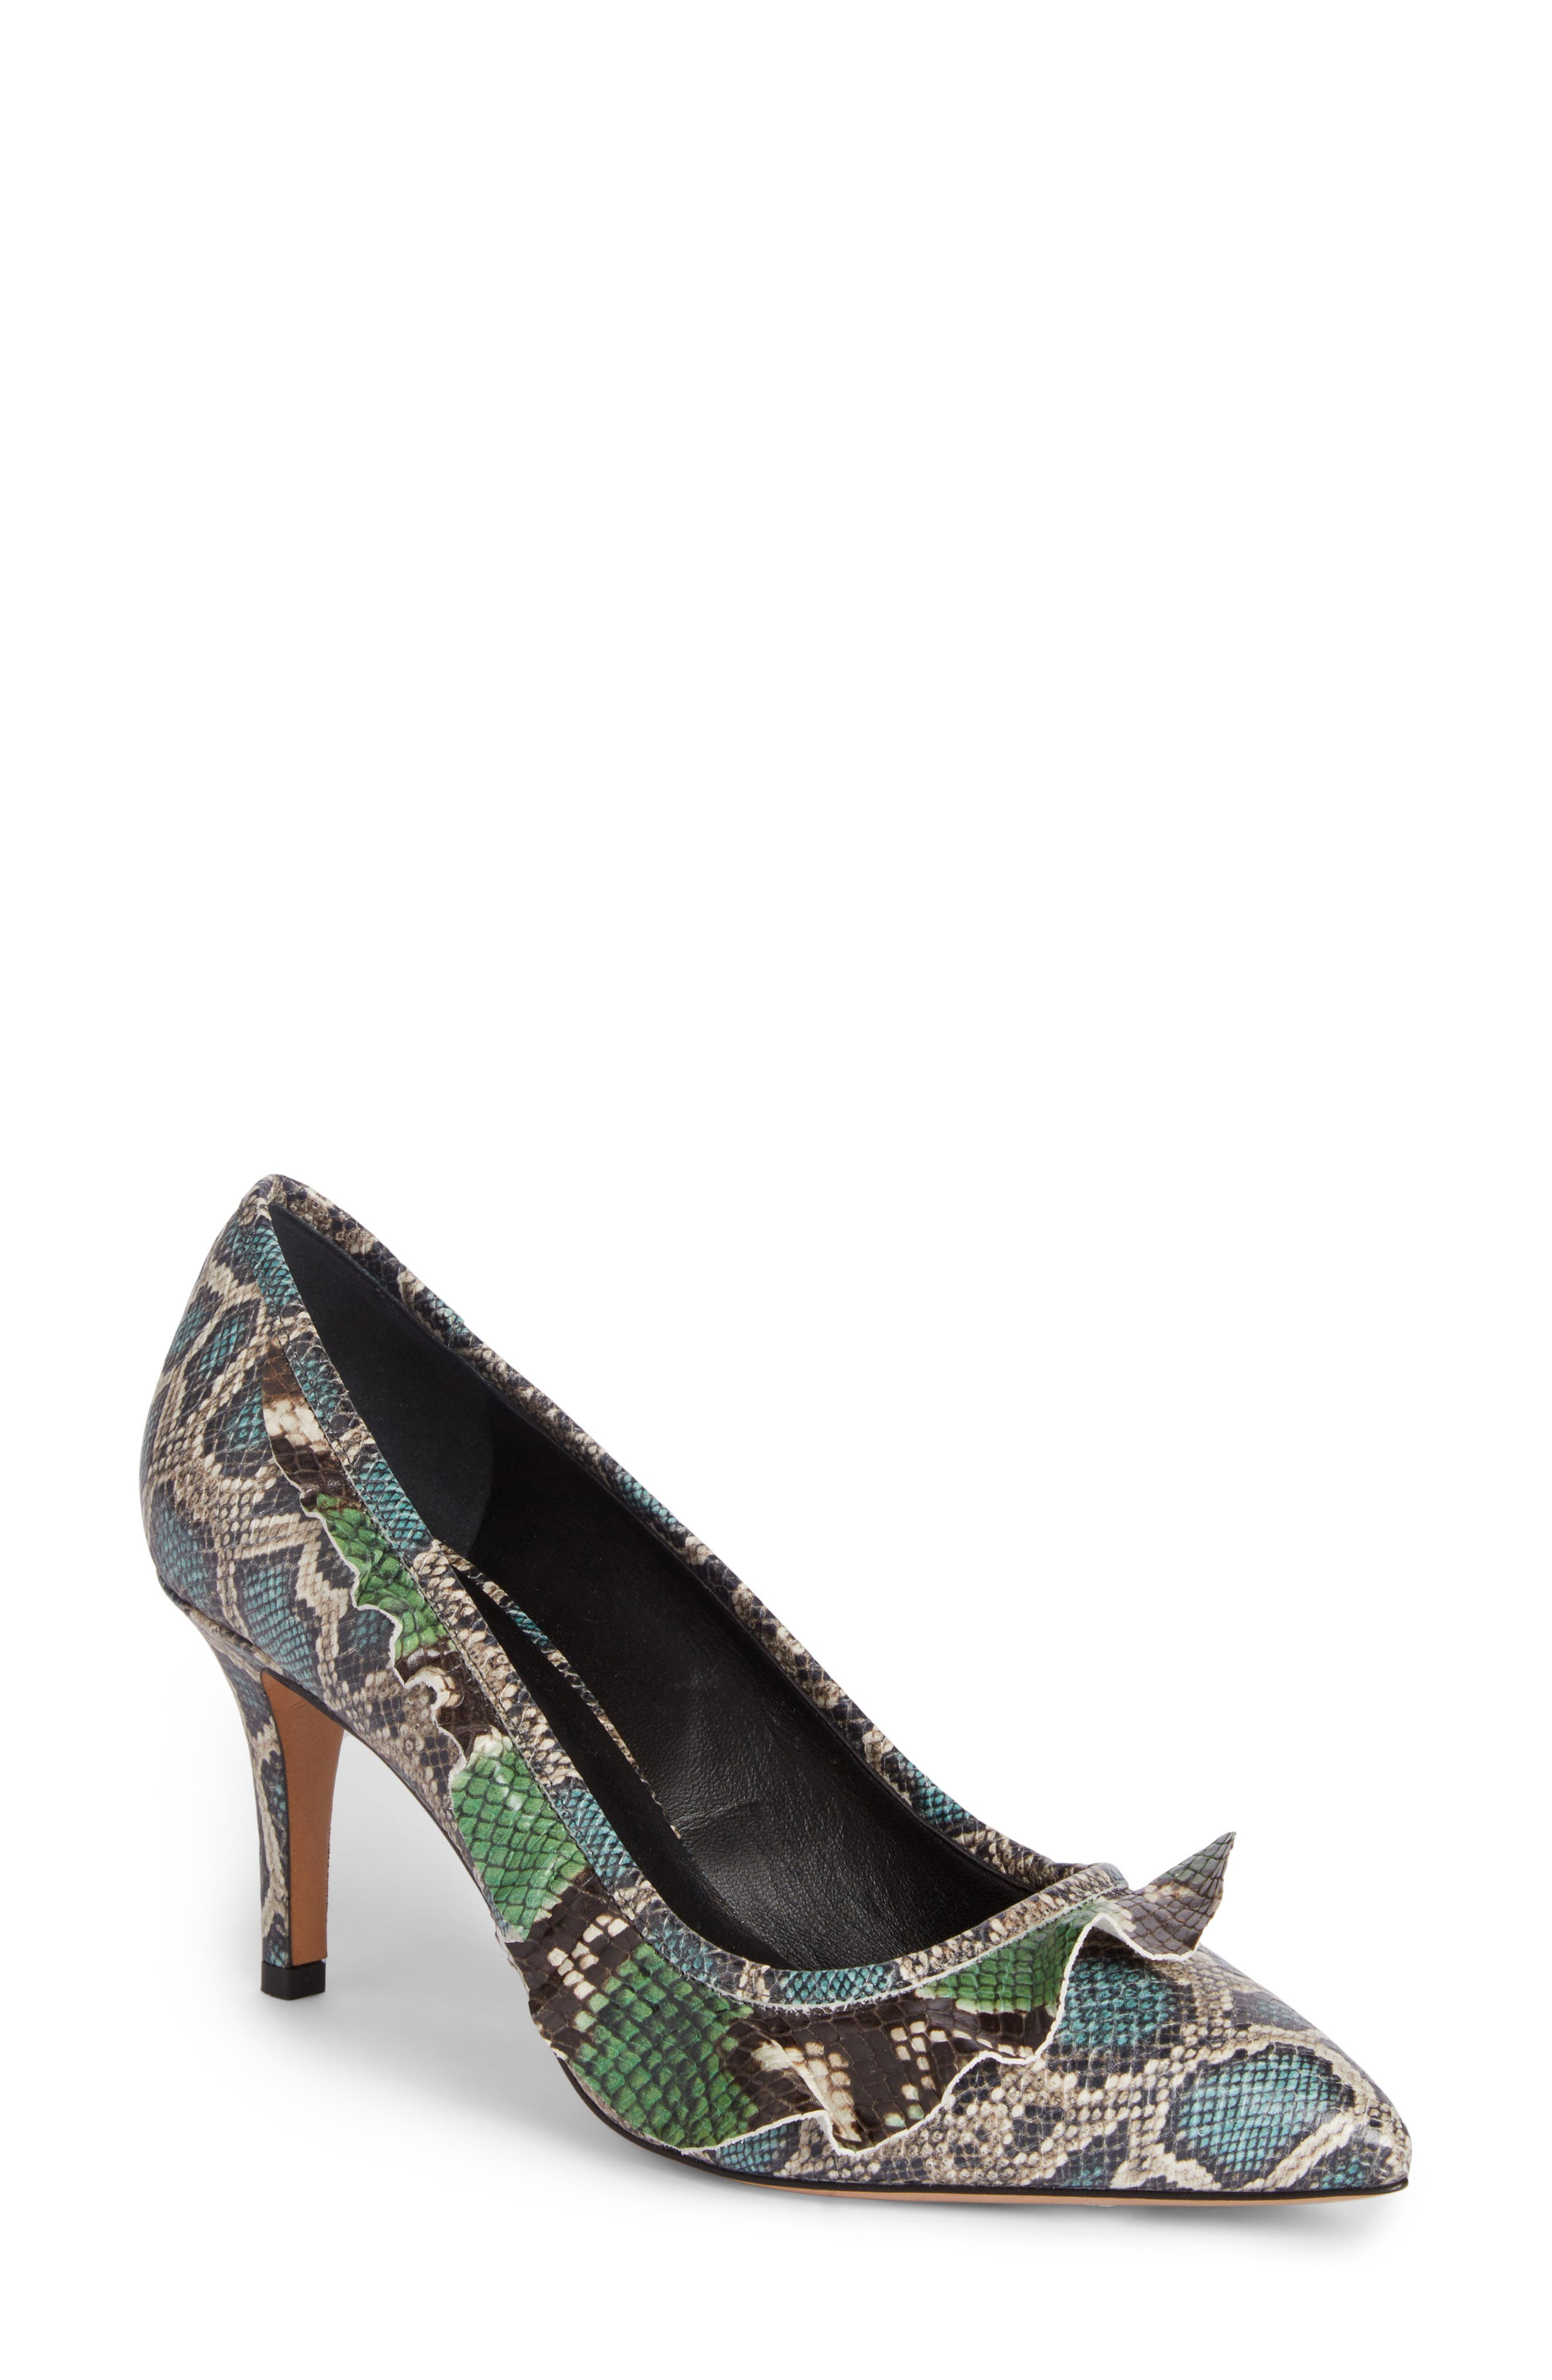 Poween Snakeskin Embossed Ruffle Pump,                             Main thumbnail 1, color,                             300